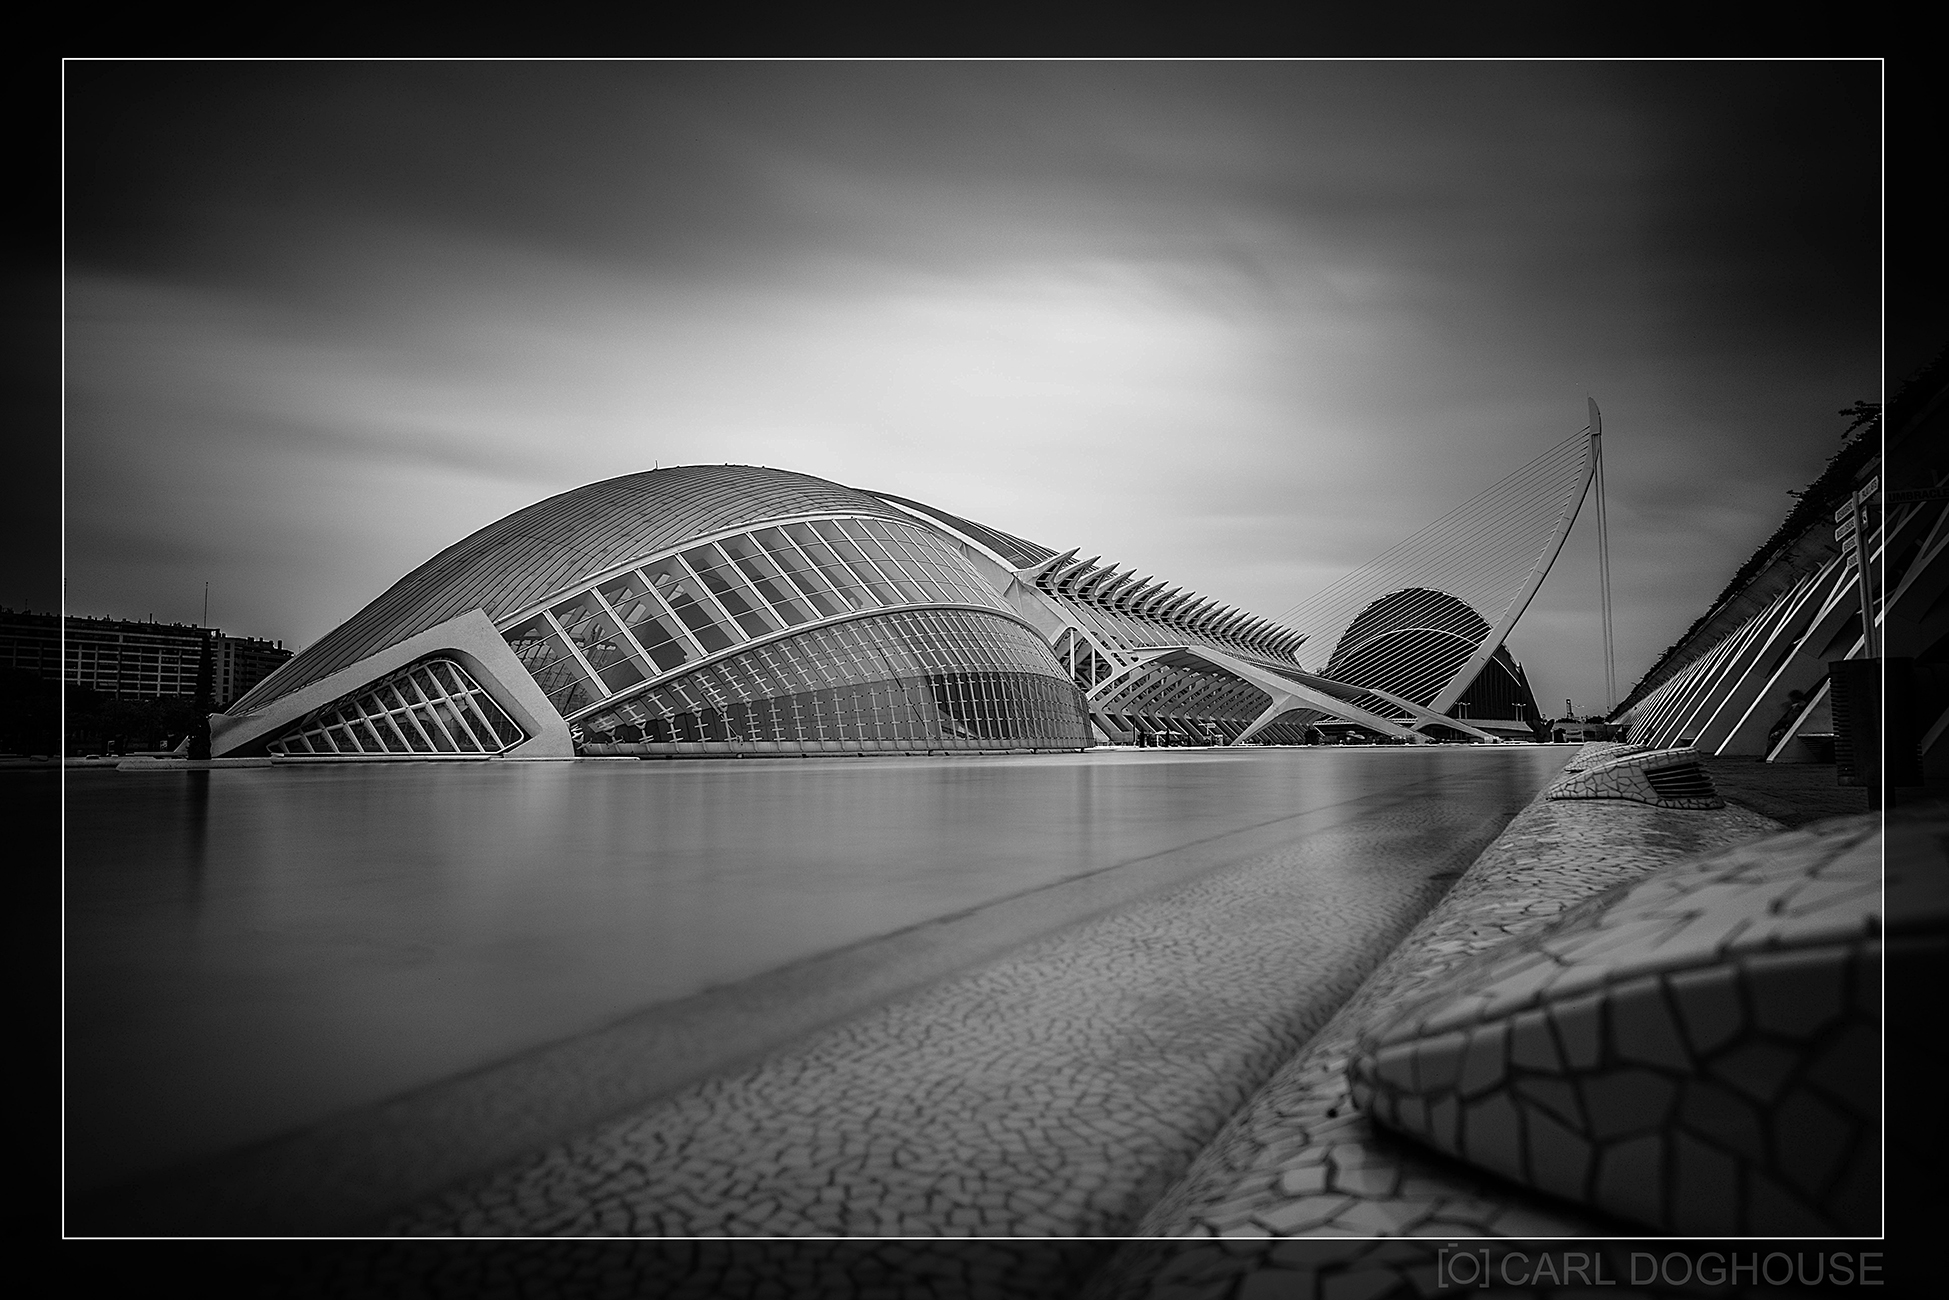 Arts and Science Centre, Valencia, Spain